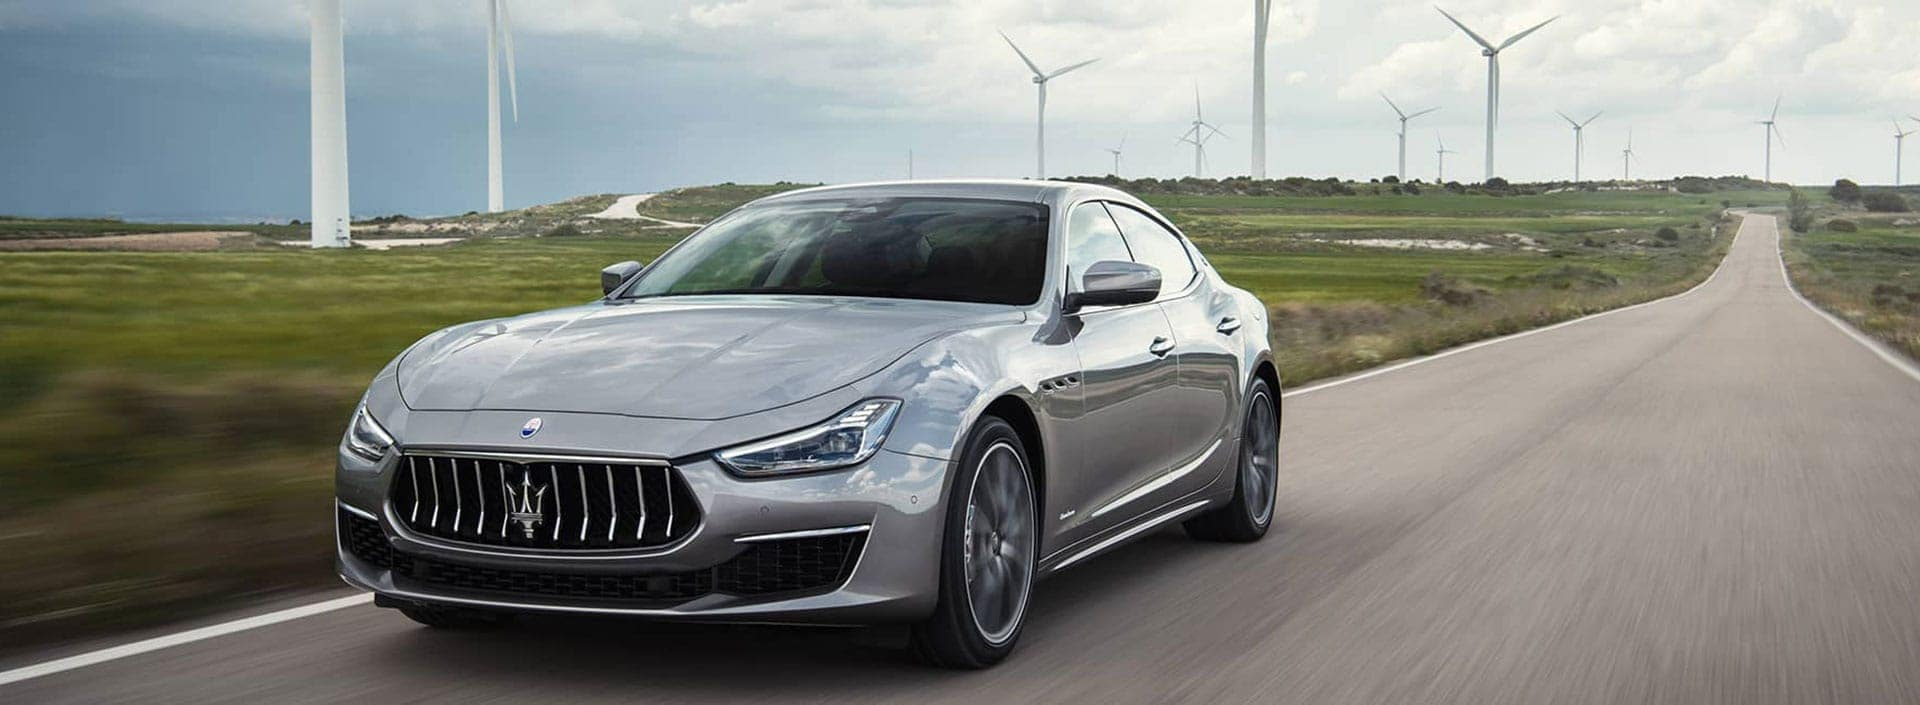 Silver Maserati Ghibli driving down a road with windmills in the background